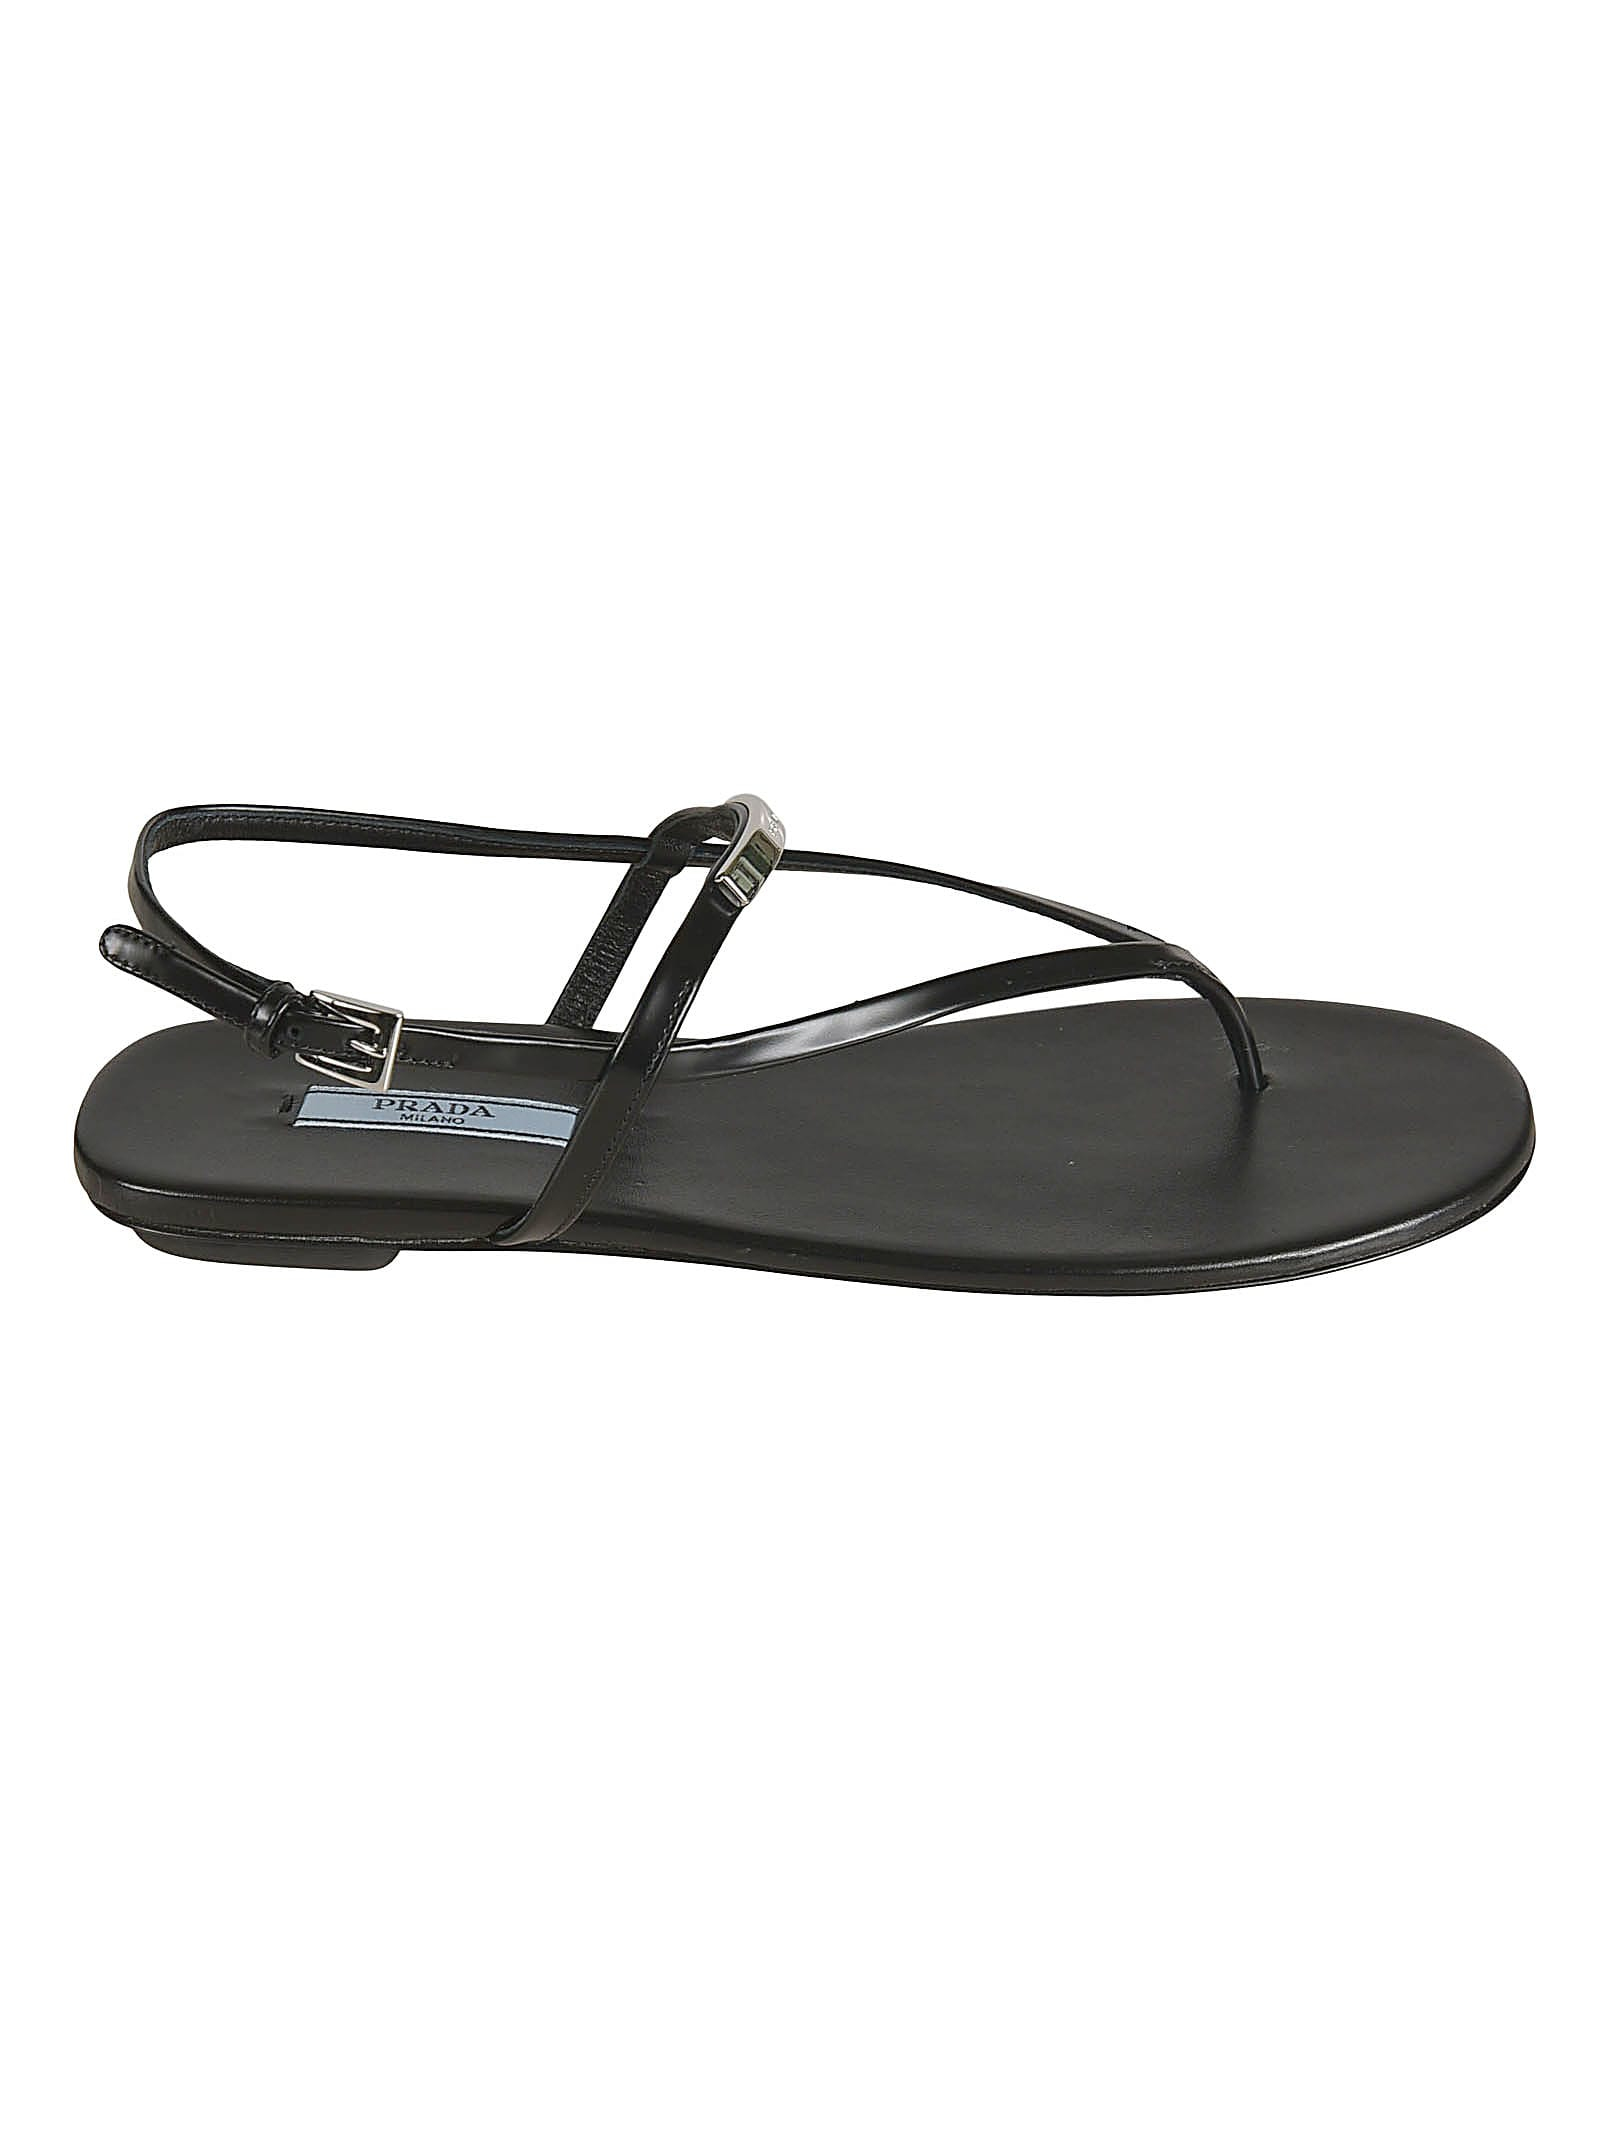 Buy Prada Side Buckled Flat Sandals online, shop Prada shoes with free shipping